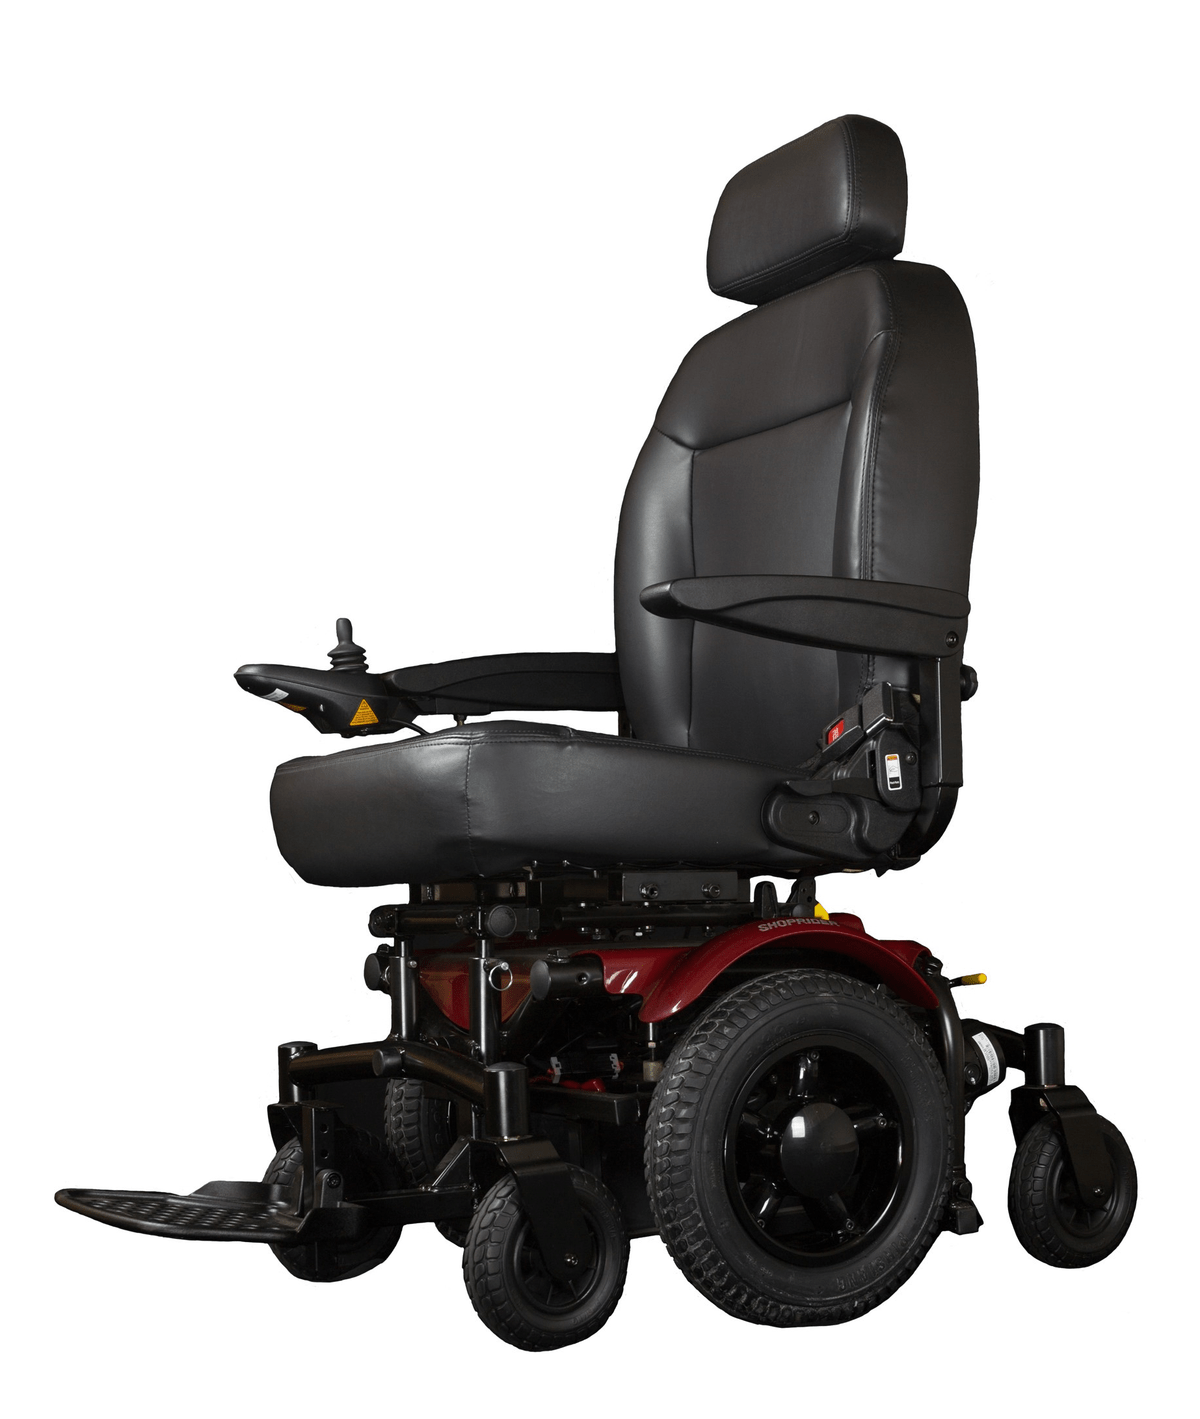 Power Chair Repair Shoprider 6runner 14 Power Wheelchair Cheapest Prices